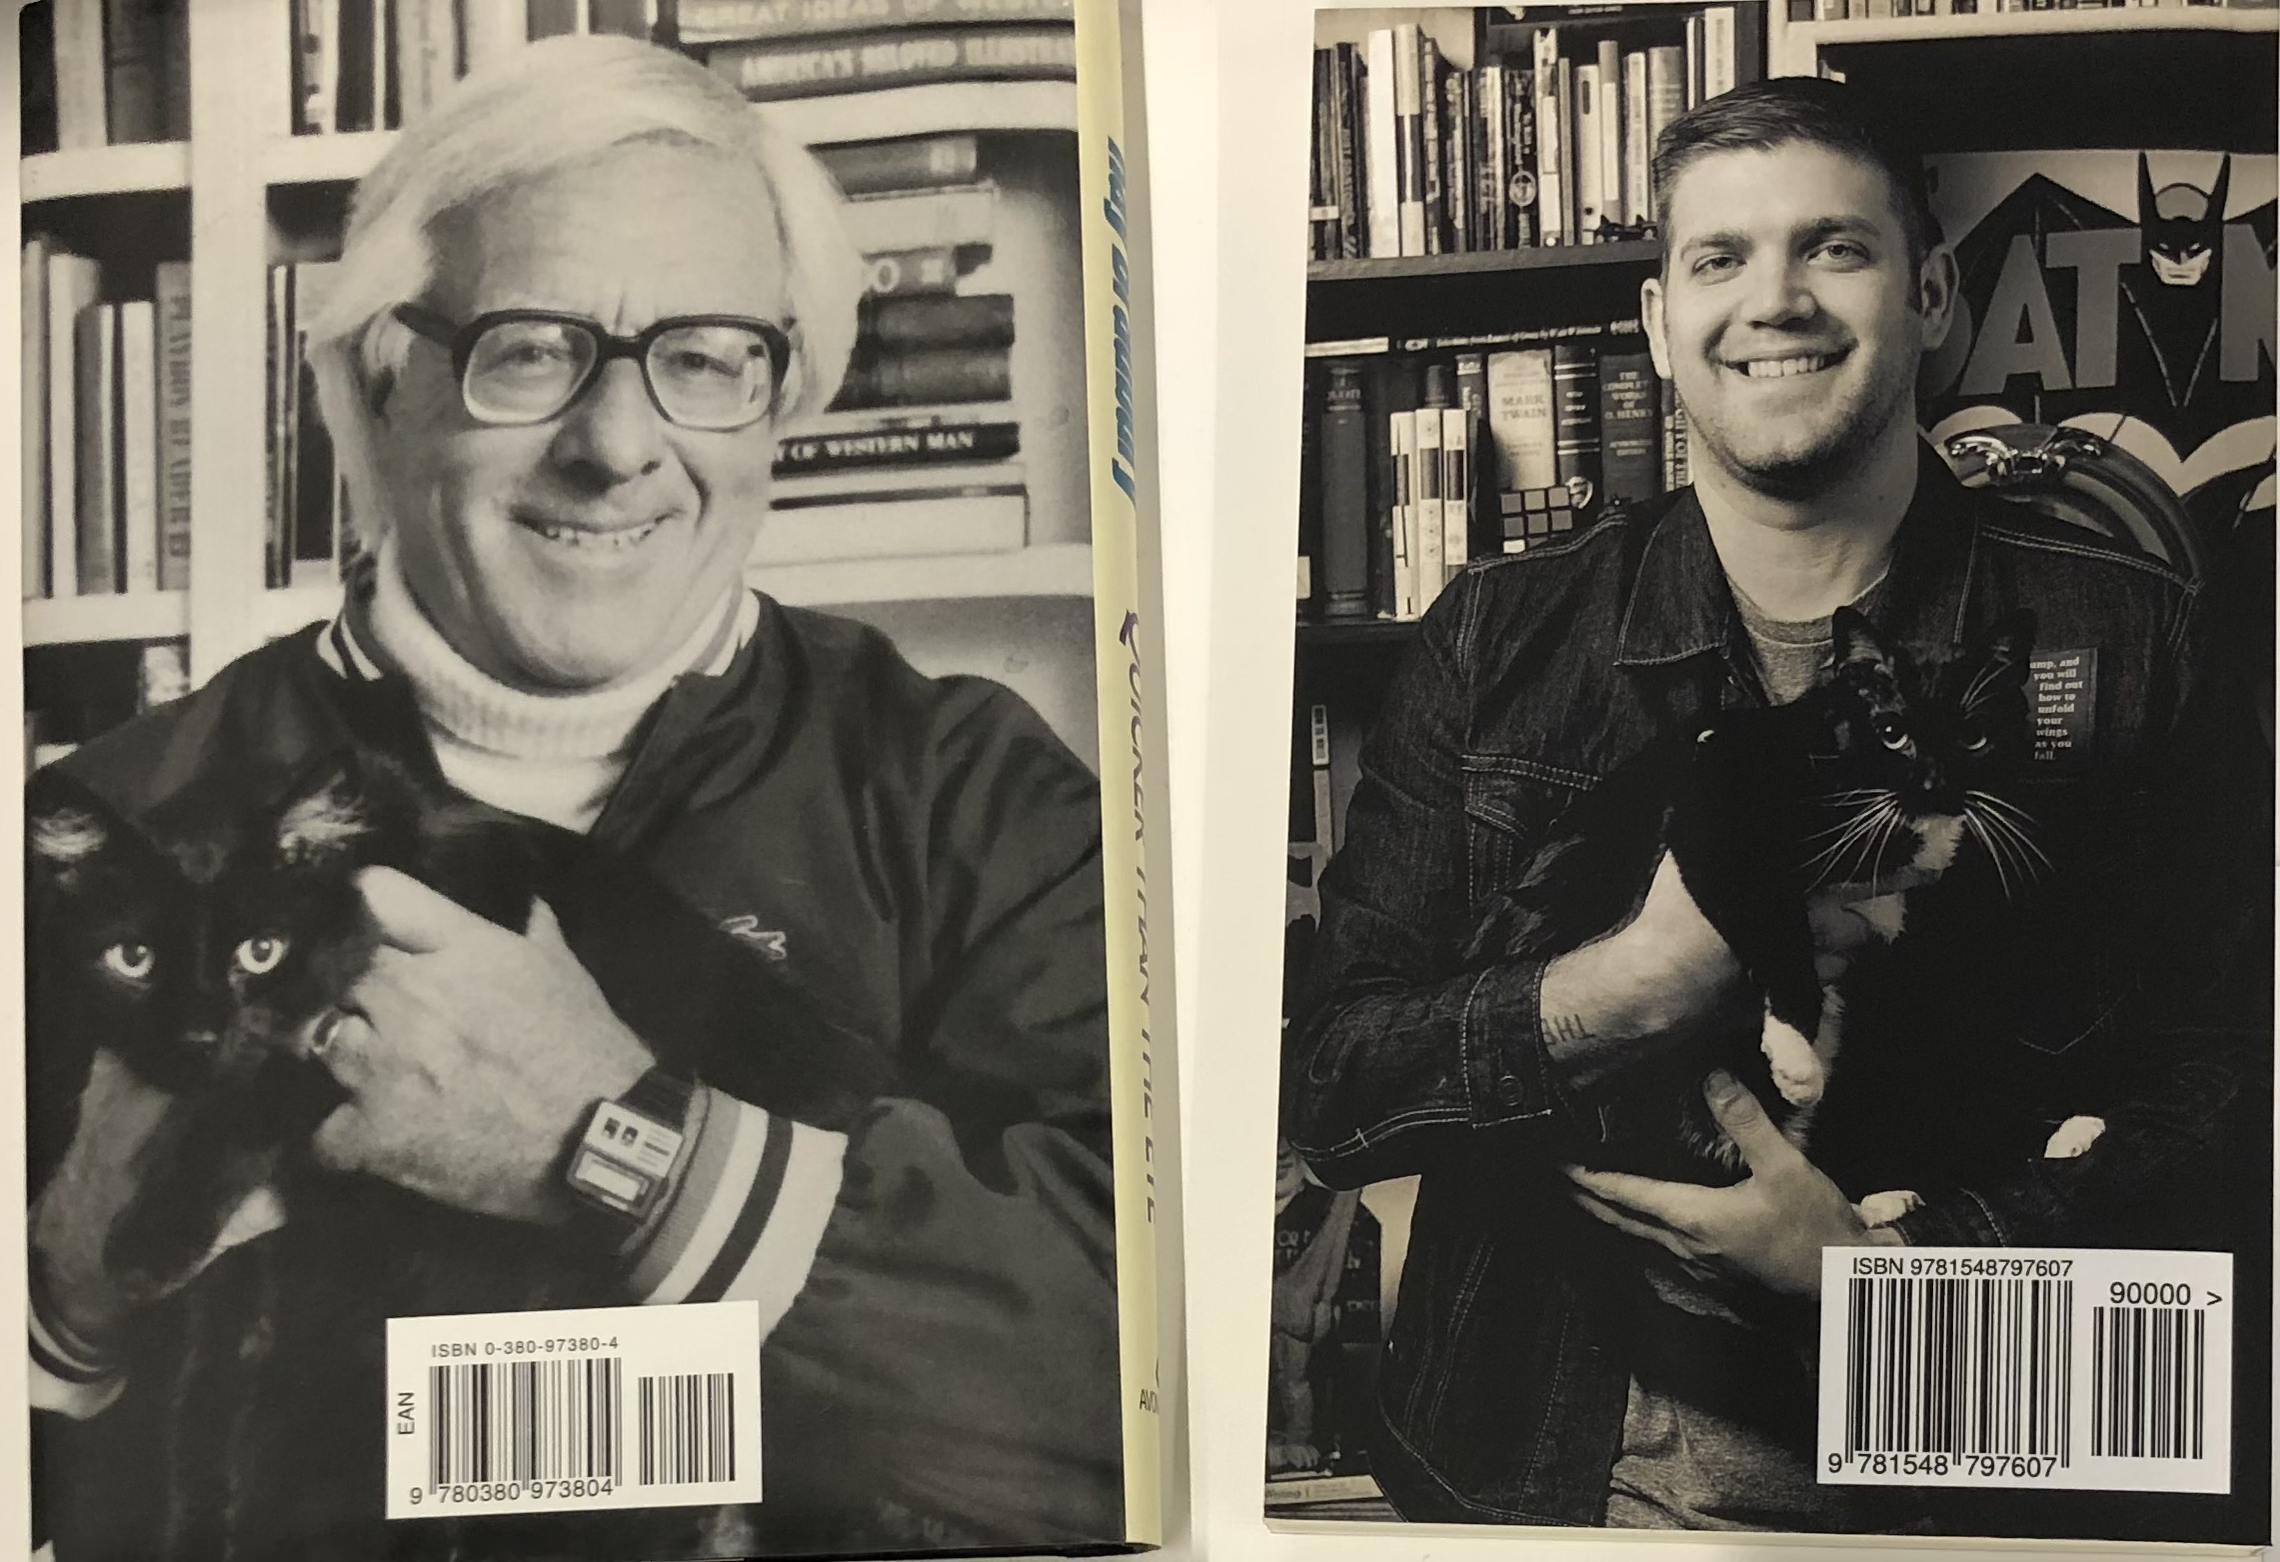 I'm a massive Ray Bradbury fan, so when my first book was released, we copied an iconic Bradbury photo for the back cover.